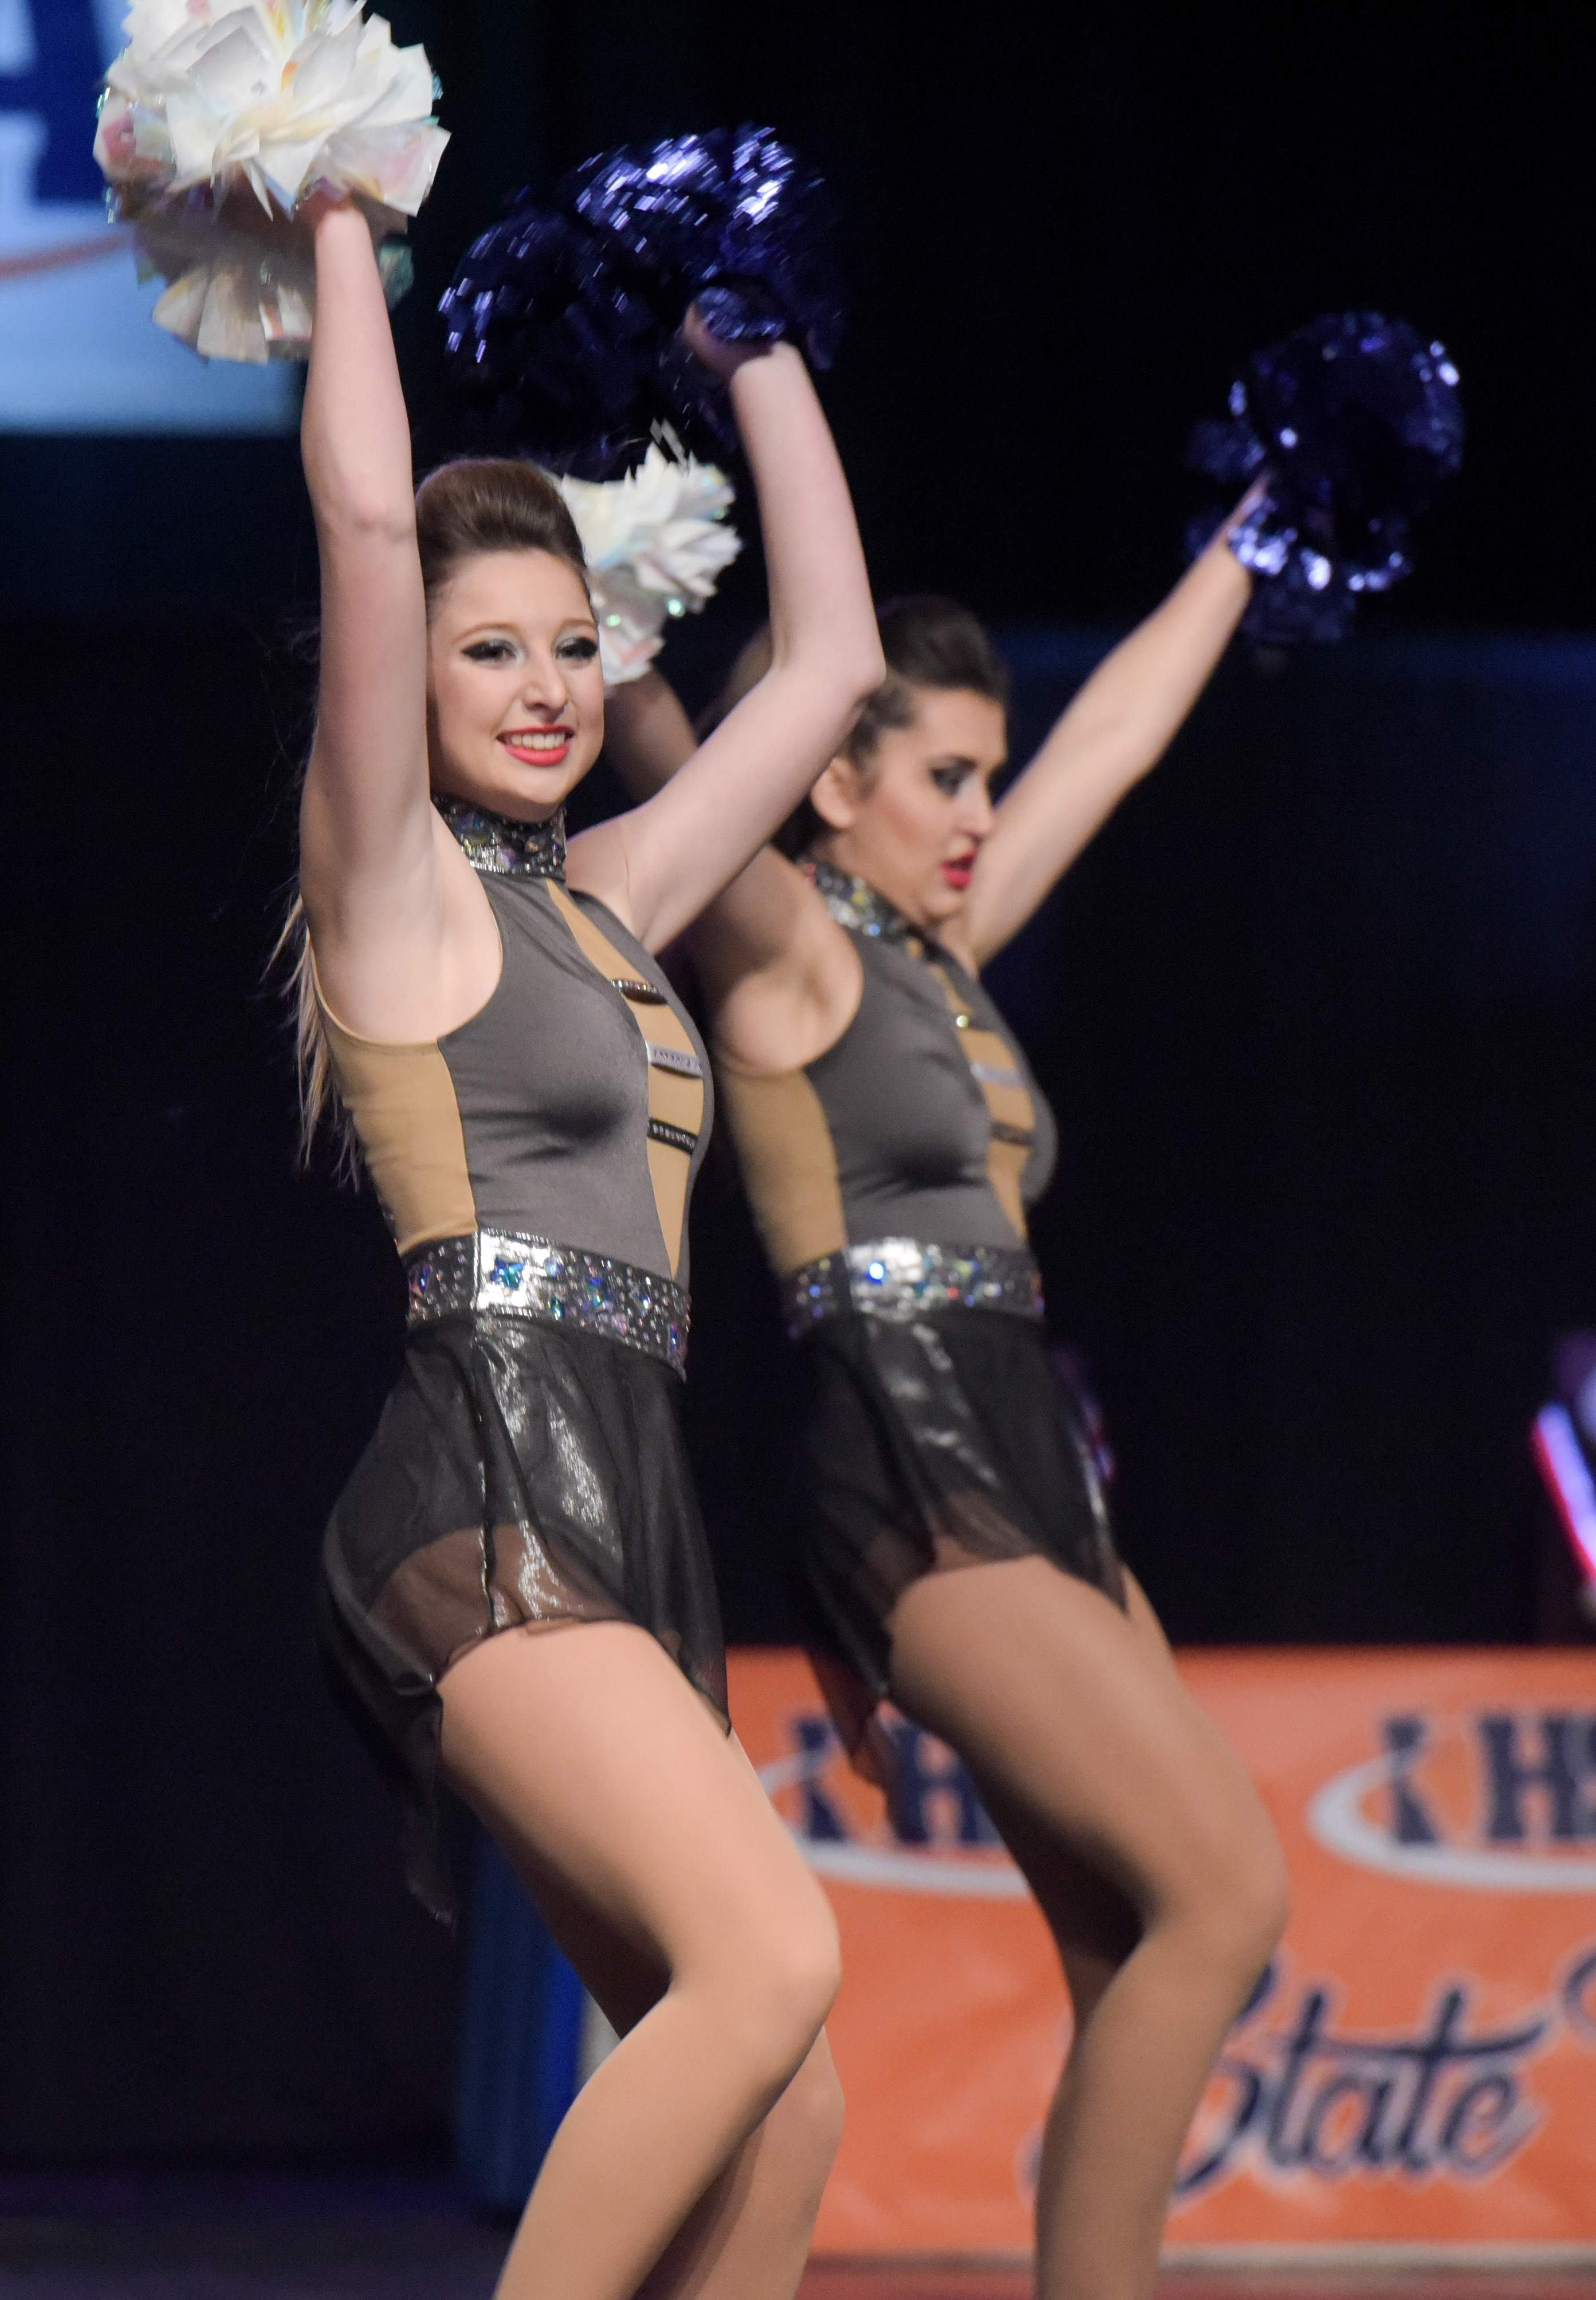 Jenna Leaton and Rachel Finders perform with the team on Friday.